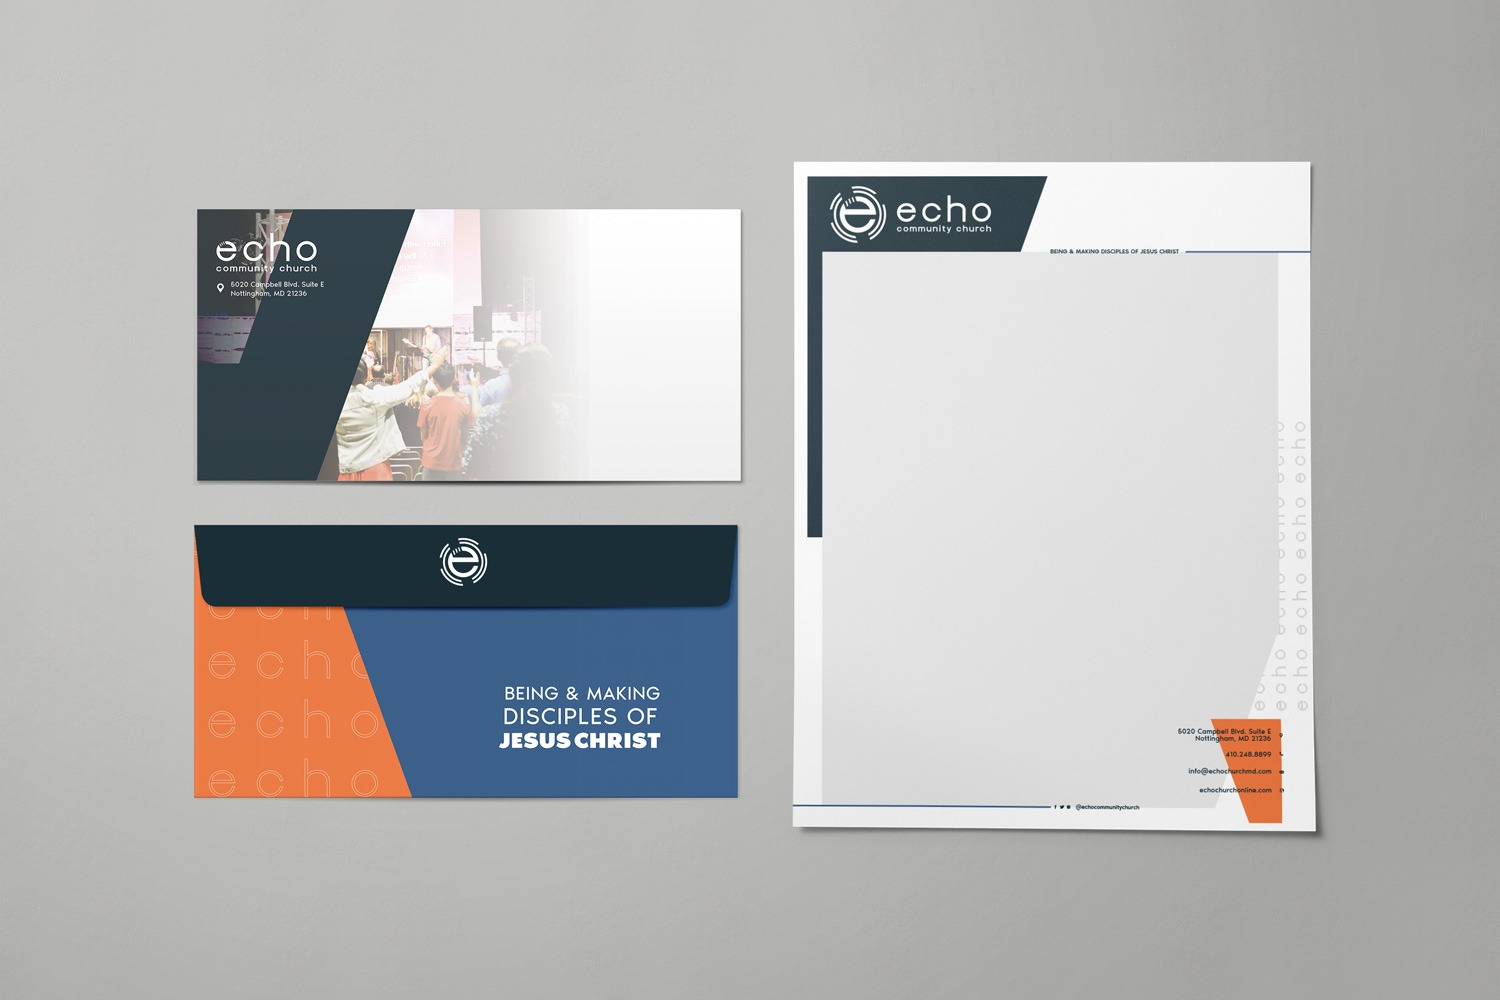 Church branding ideas of letterhead and envelope set examples by Abstract Union